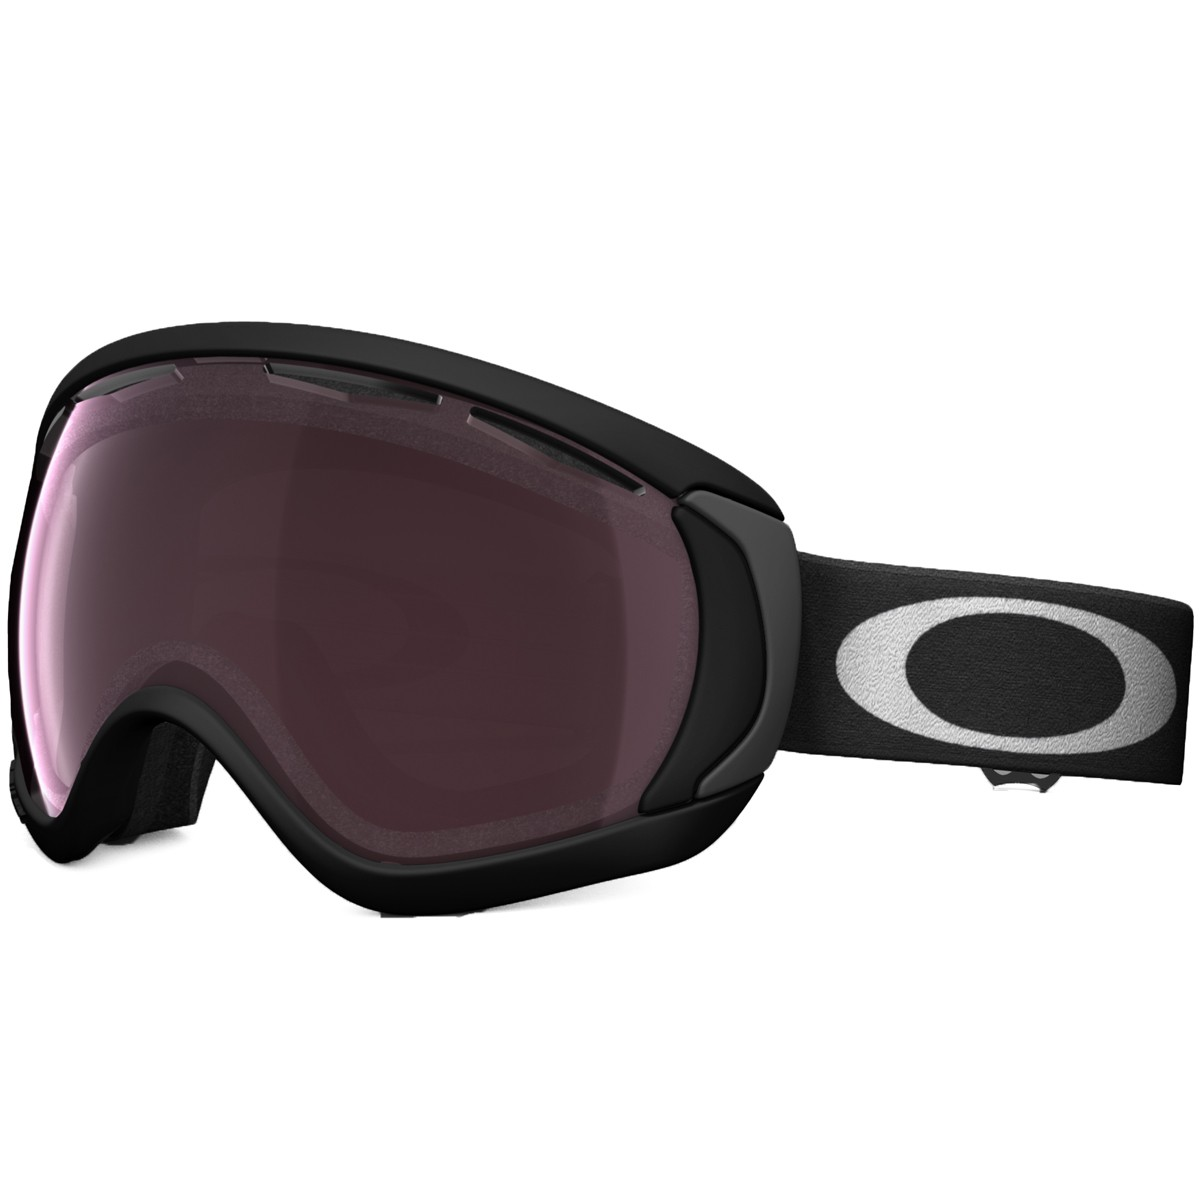 black and blue oakley sunglasses qgvg  black and blue oakley sunglasses